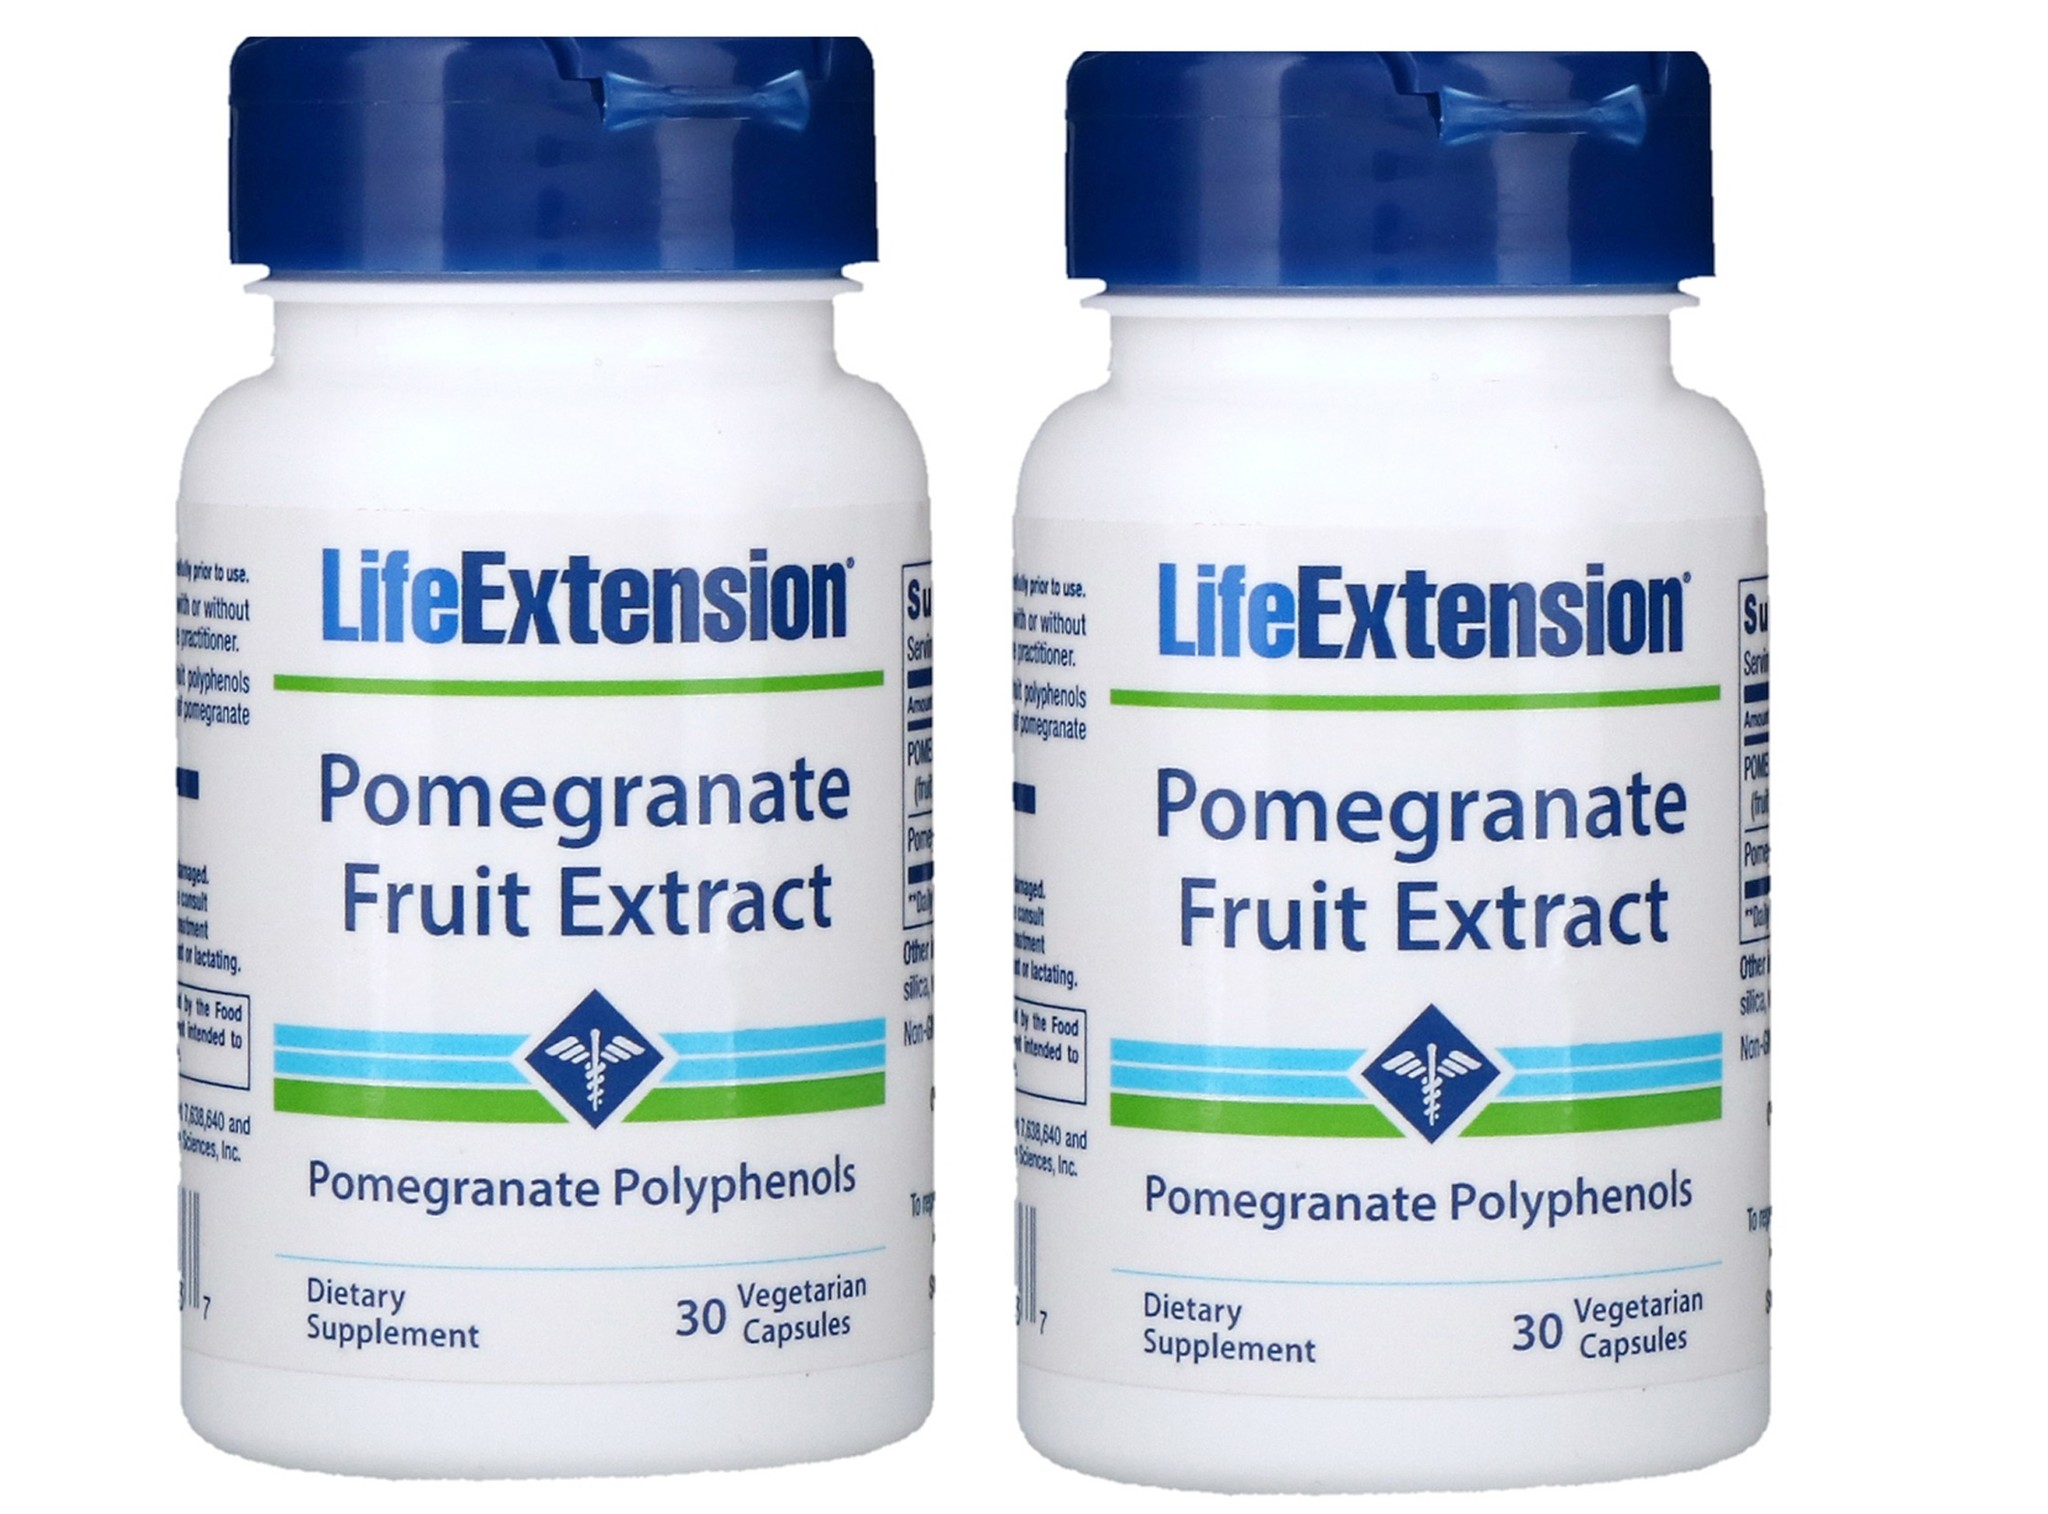 Life Extension Pomegranate Fruit Extract, 30 Vegetarian Capsules, 2-packs